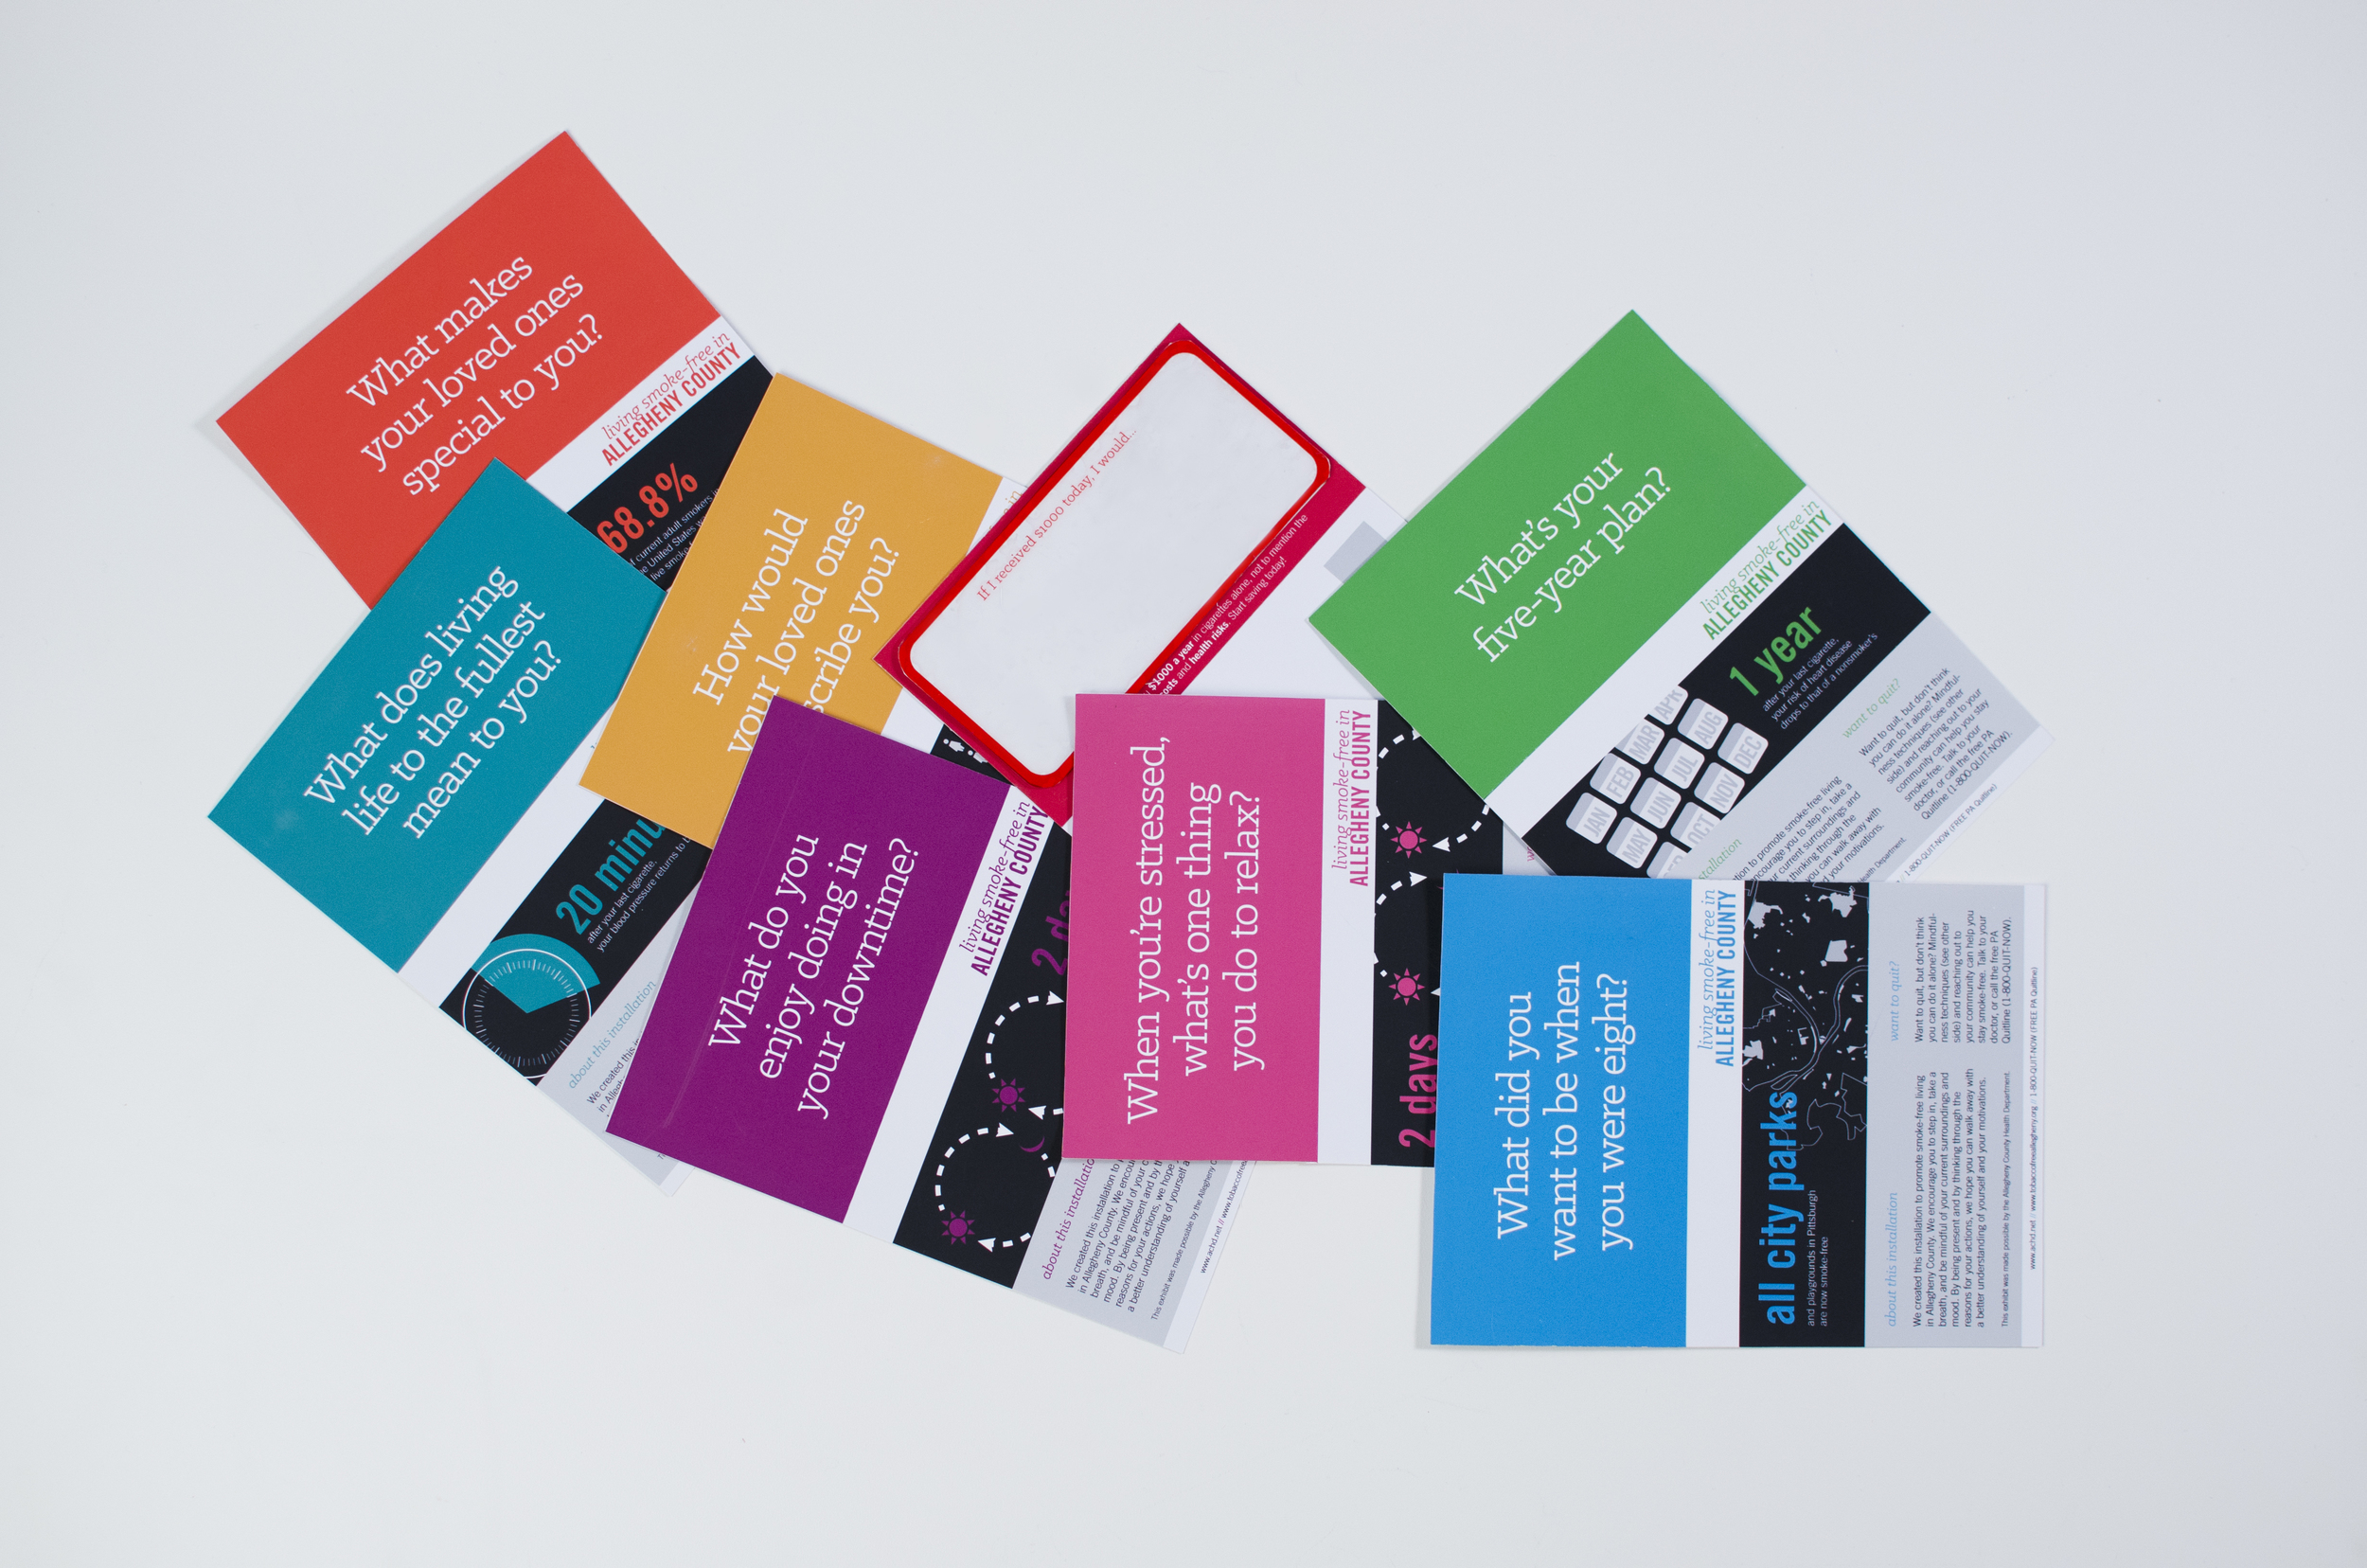 Bright colors and bold type differentiate this communication system from others currently on the market that utilize depressing imagery and dated styles.